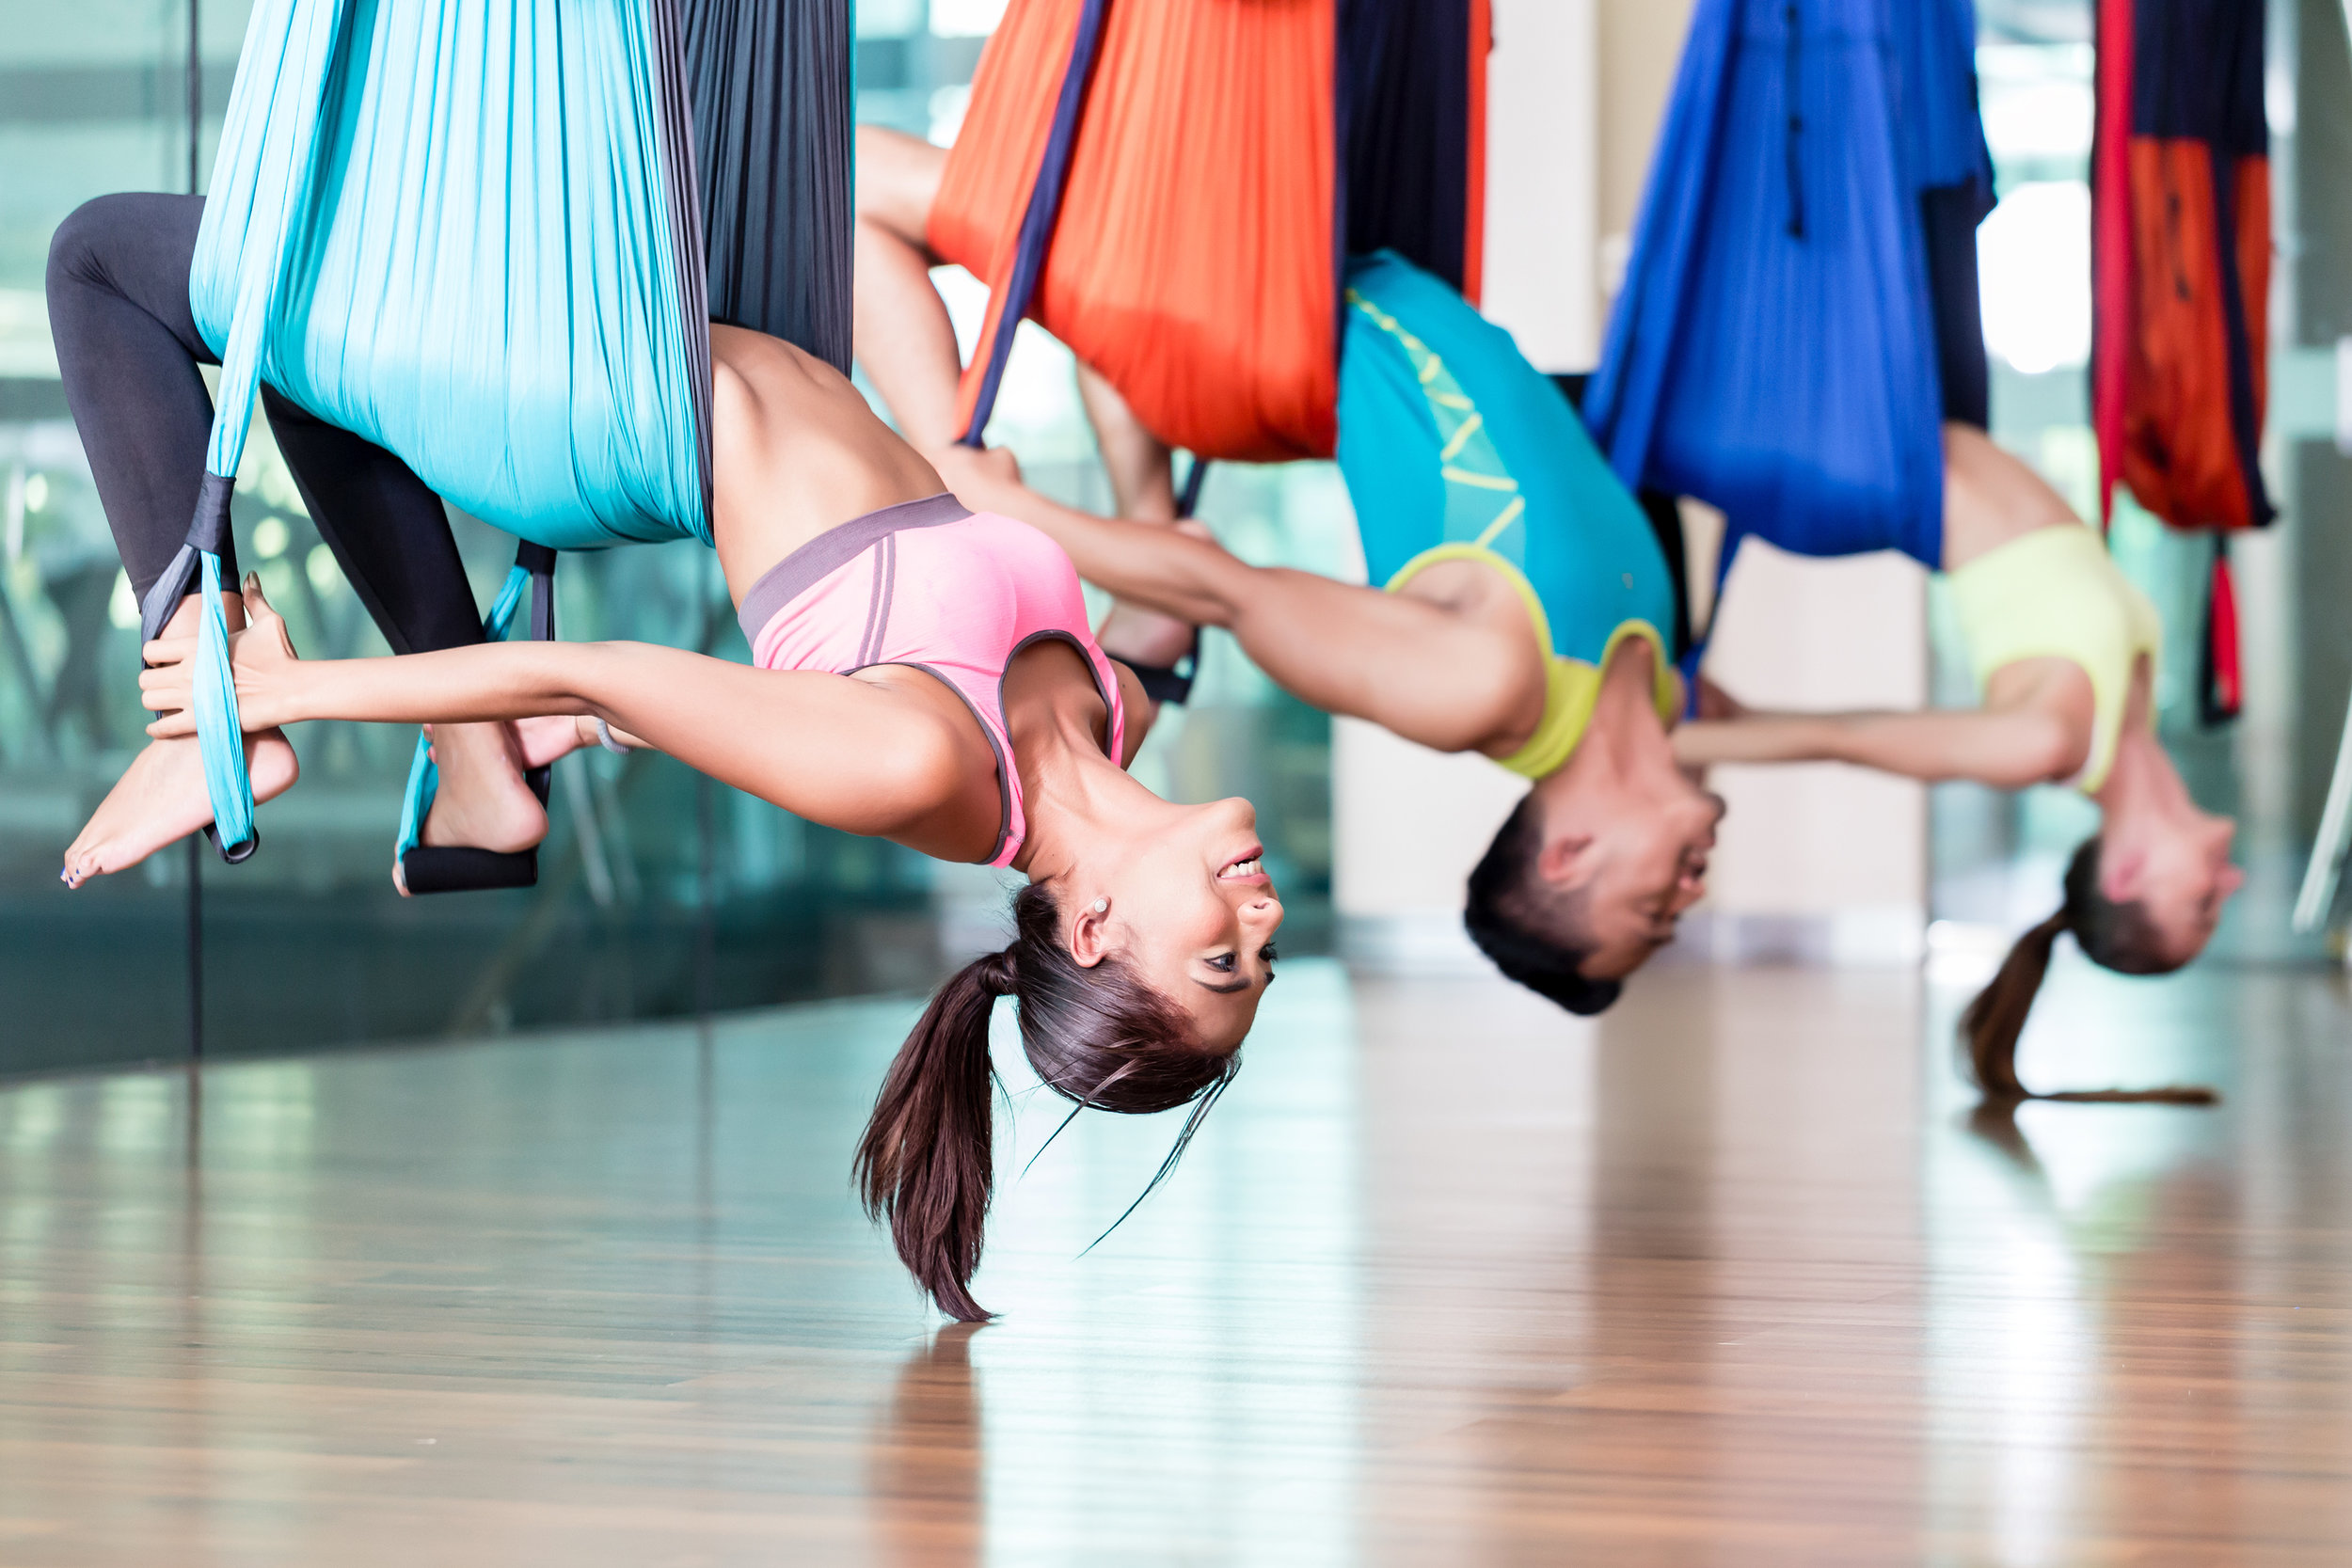 LENGTHEN & ELONGATE MUSCLES - Aerial yoga removes gravity from the stretching, lengthening, and strengthening equation. Regardless of each individual's ability, aerial yoga can provide infinite value to each and every body.